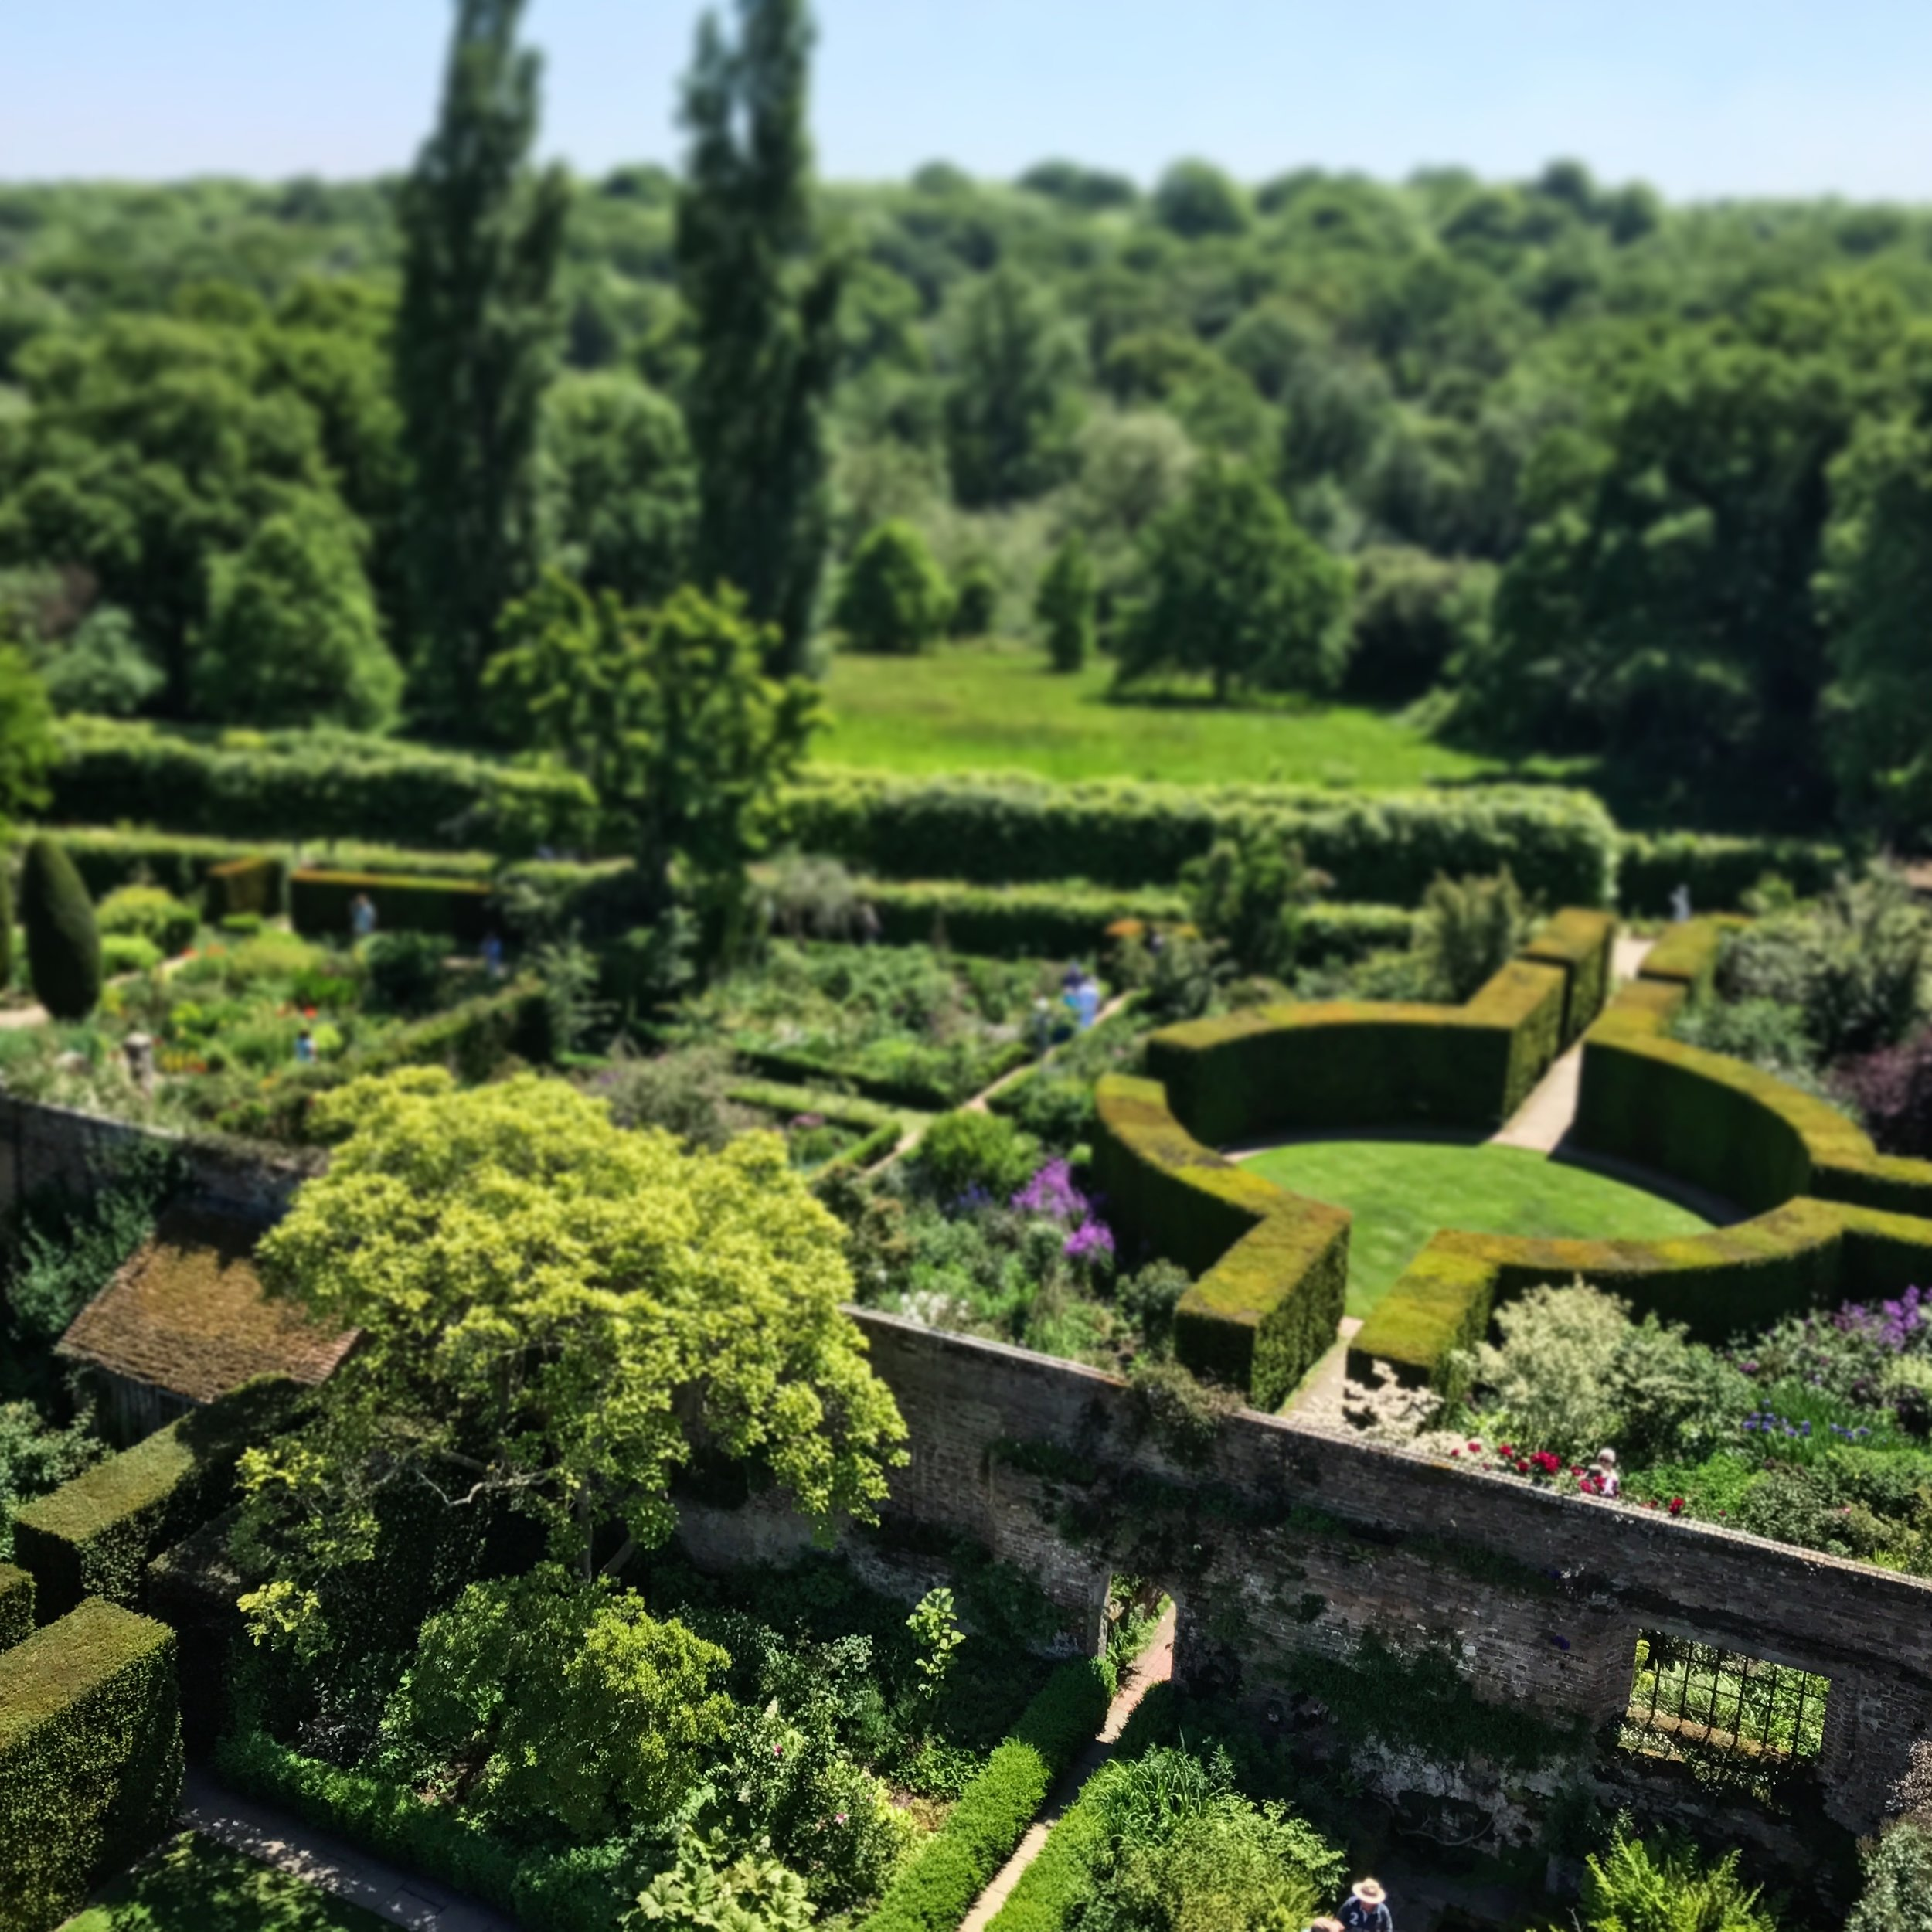 A view of two famous garden rooms at Sissinghurst Gardens, Kent, U.K. from the tower. Sissinghurst was the result of a collaboration between Bloomsbury Group members Vita Sackville-West (writer and passionate gardener) and her husband Harold Nicolson (architect).